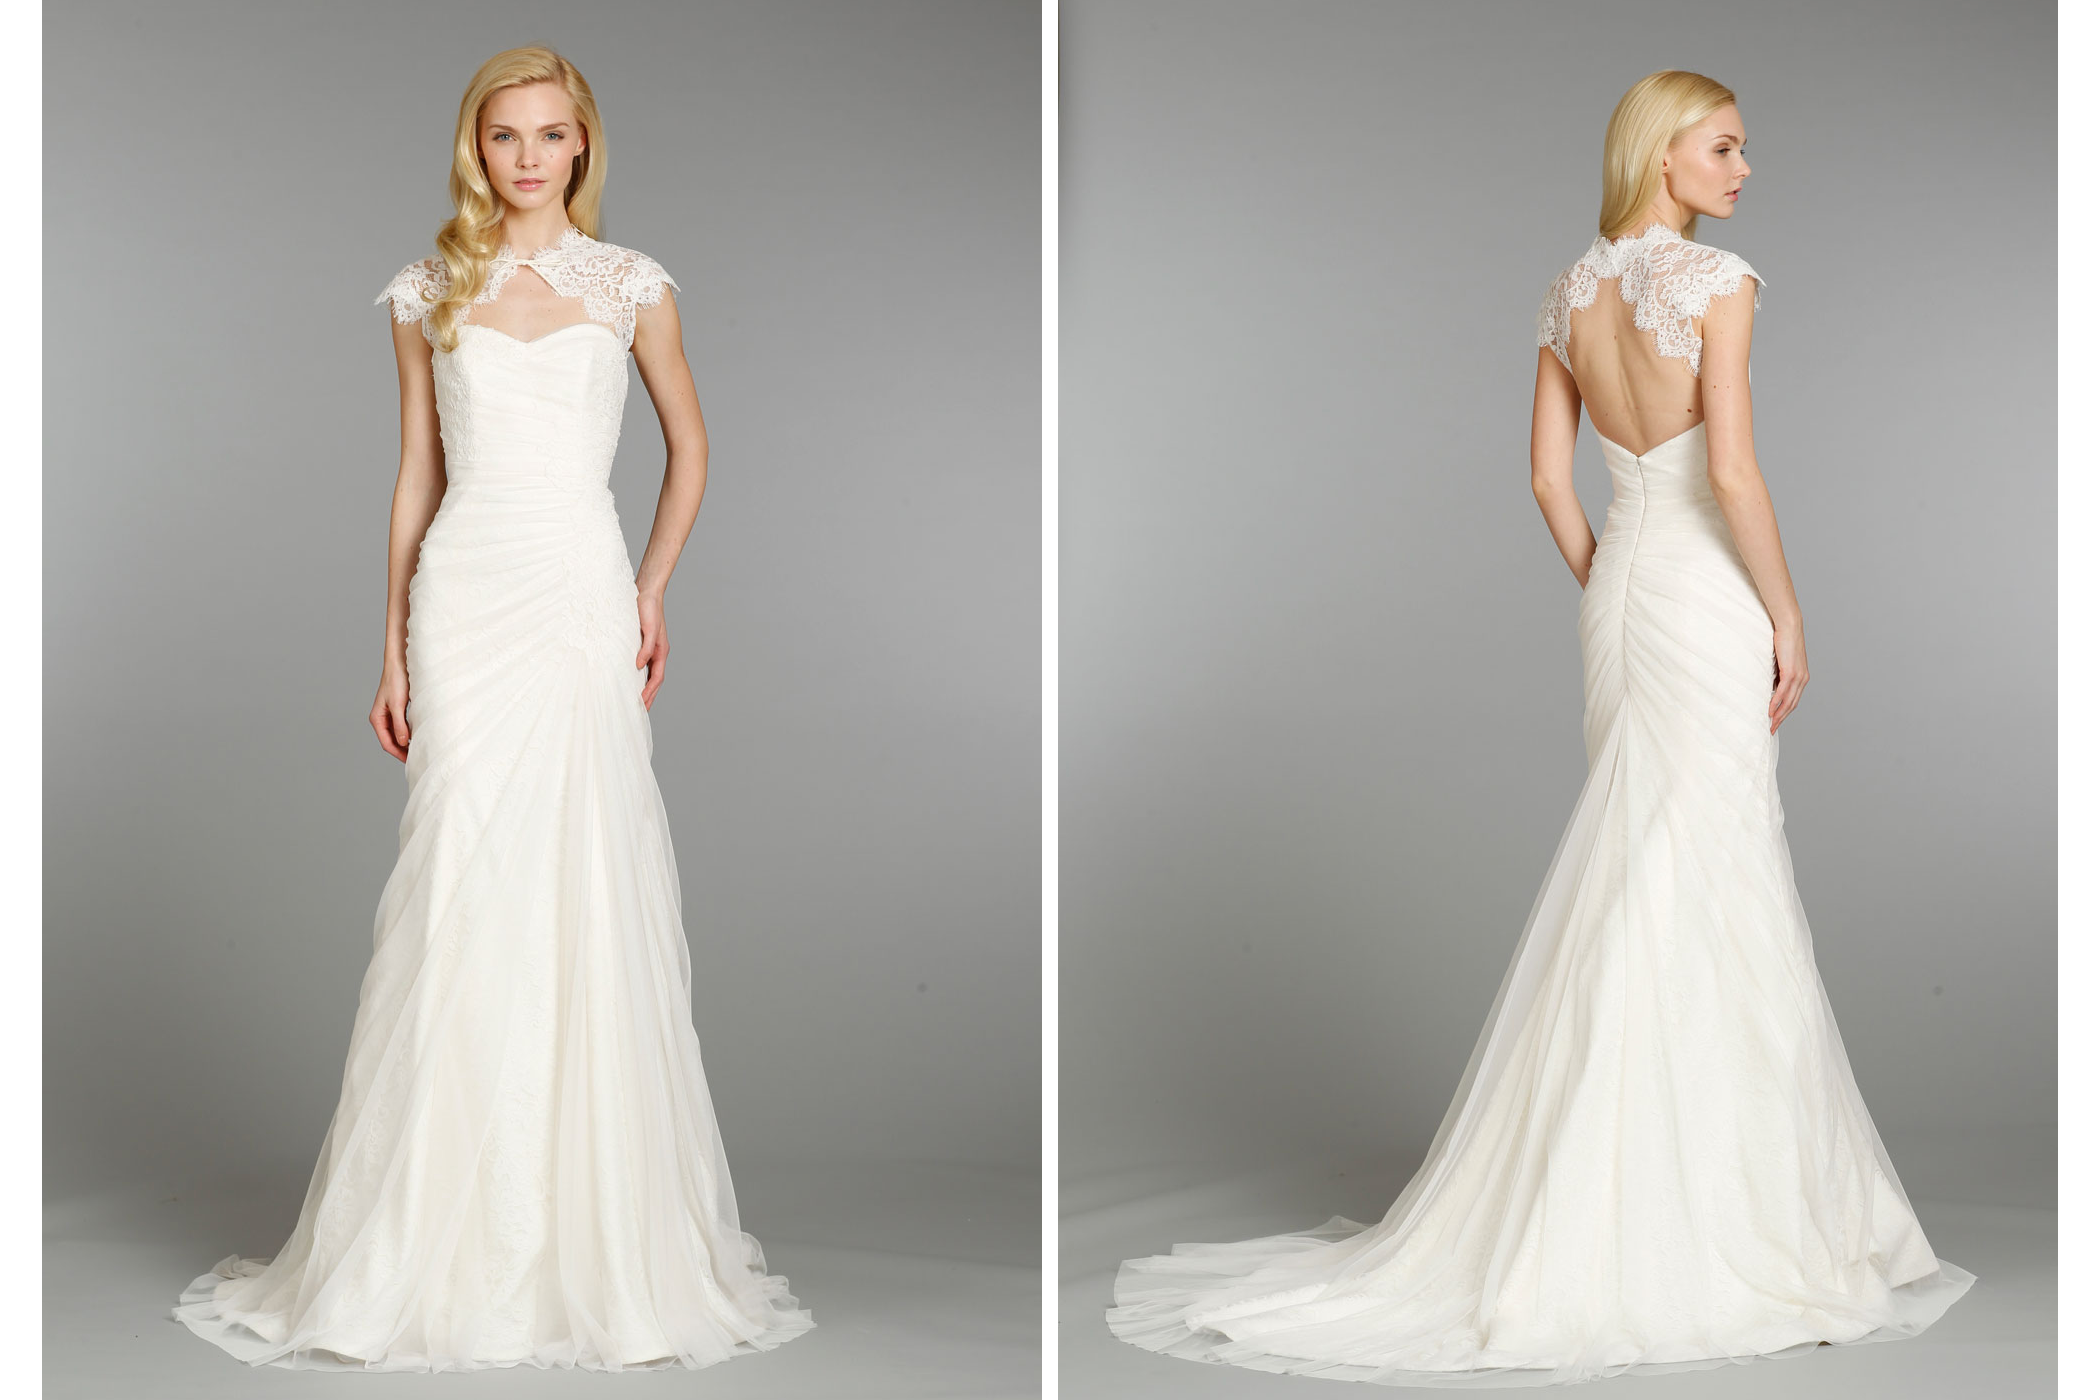 Hayley paige wedding dress fall 2013 bridal 6355 for Hayley paige wedding dress